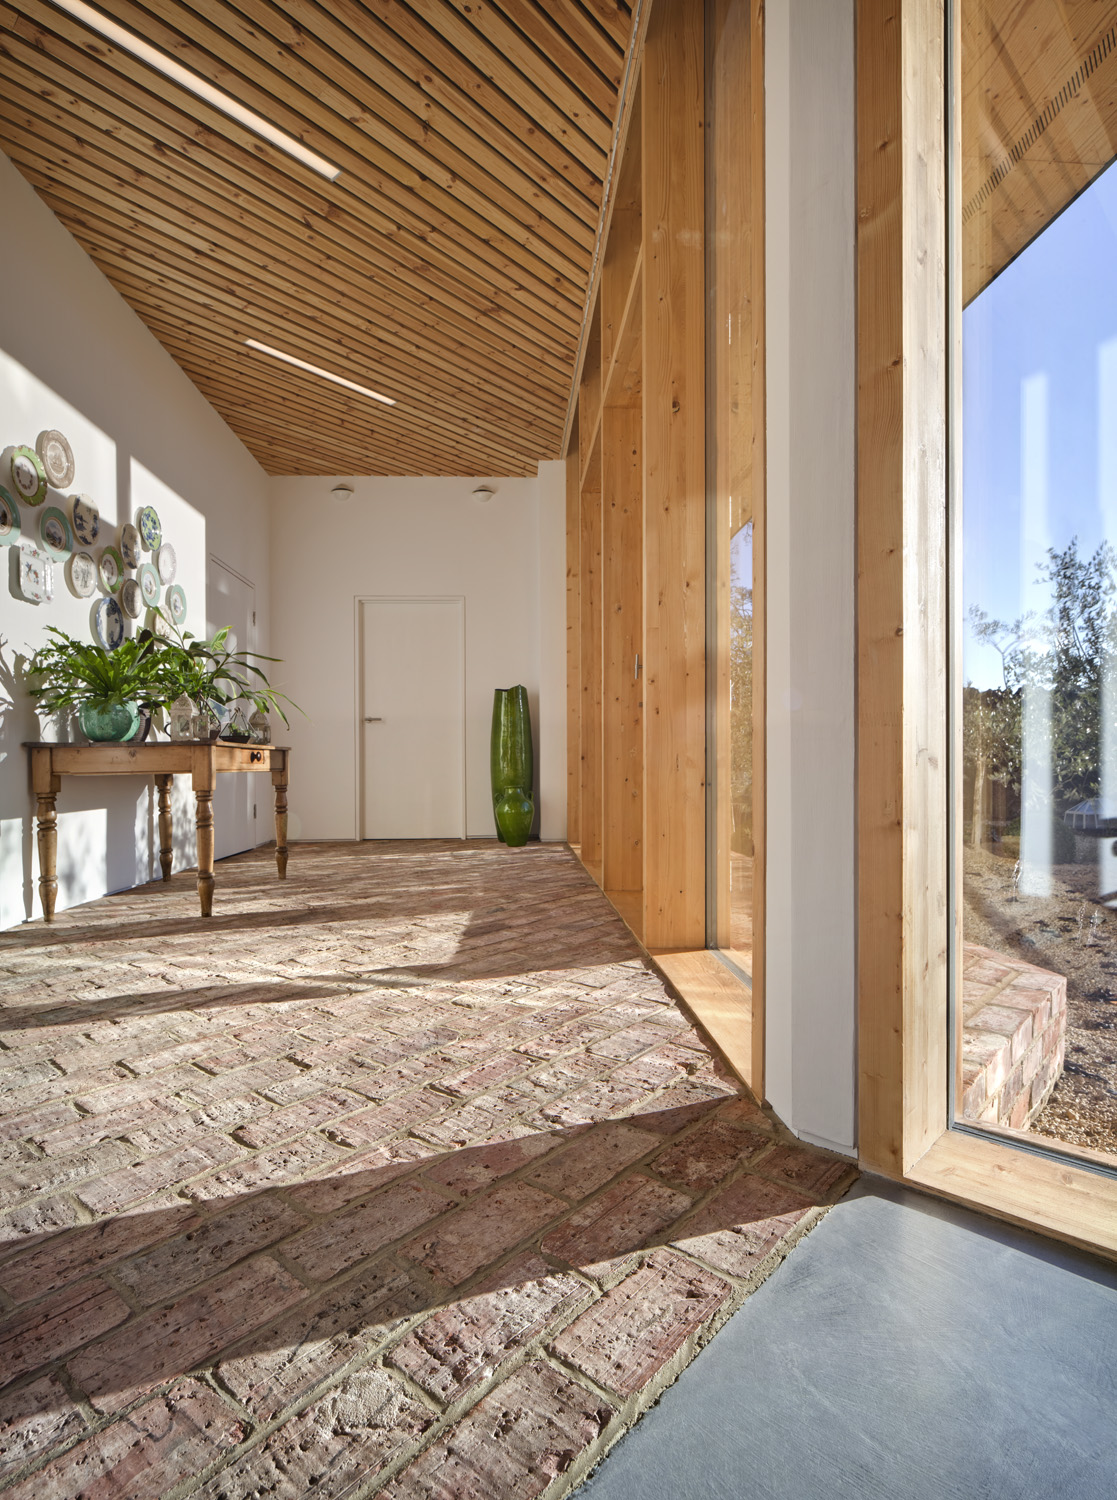 Photography by Dan Paton showcasing the new extension and barn conversion at Manor Farm, Wooton Village, Boars Hill, Oxford, by Transition by Design.